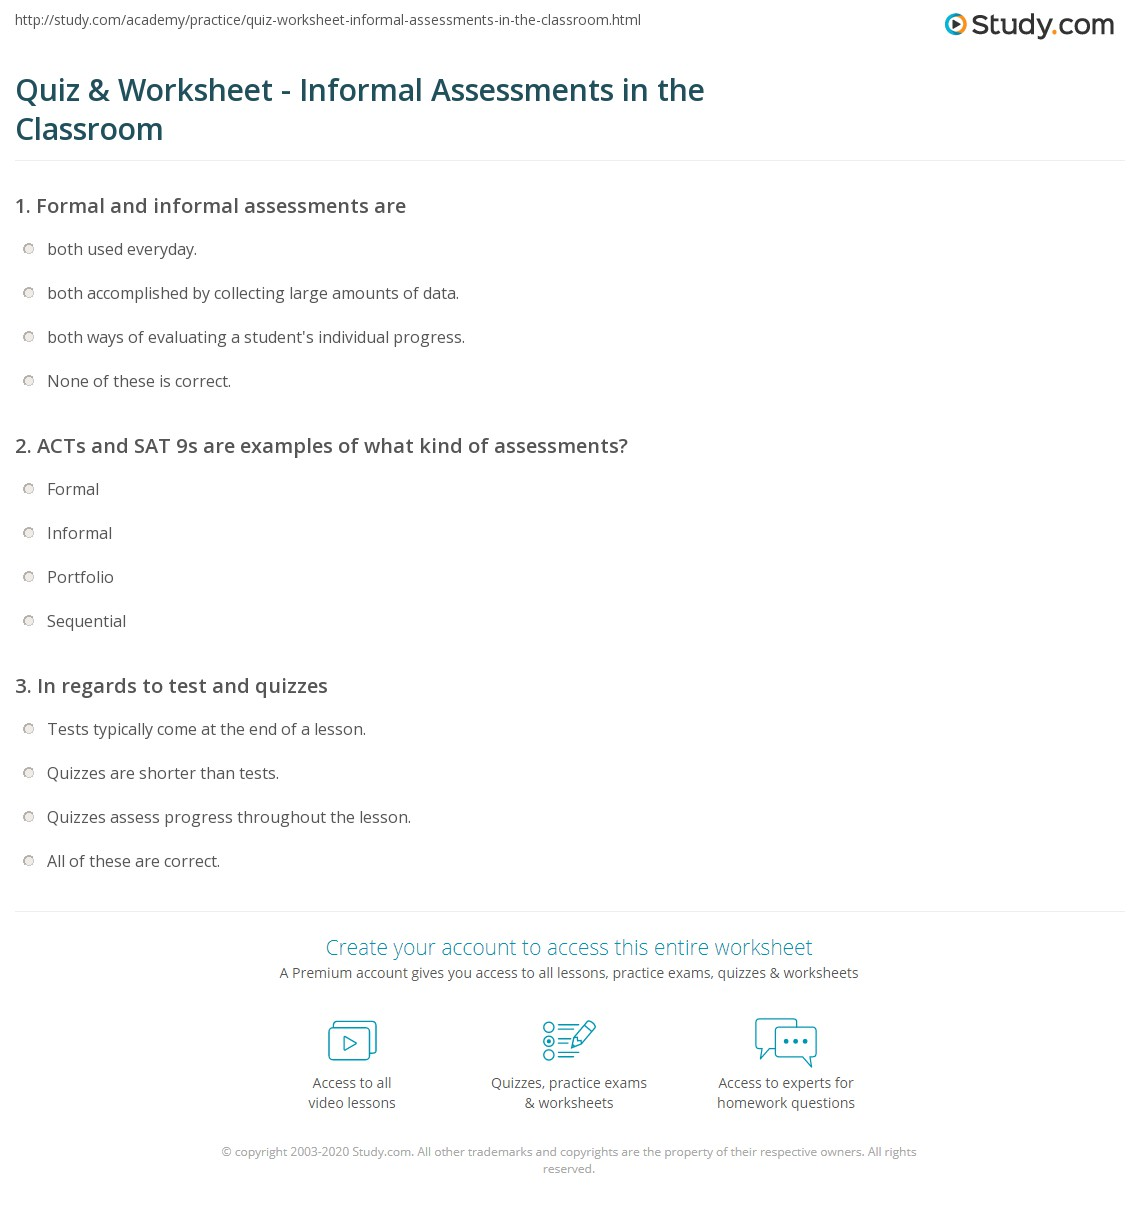 Quiz Worksheet Informal Assessments In The Classroom Study